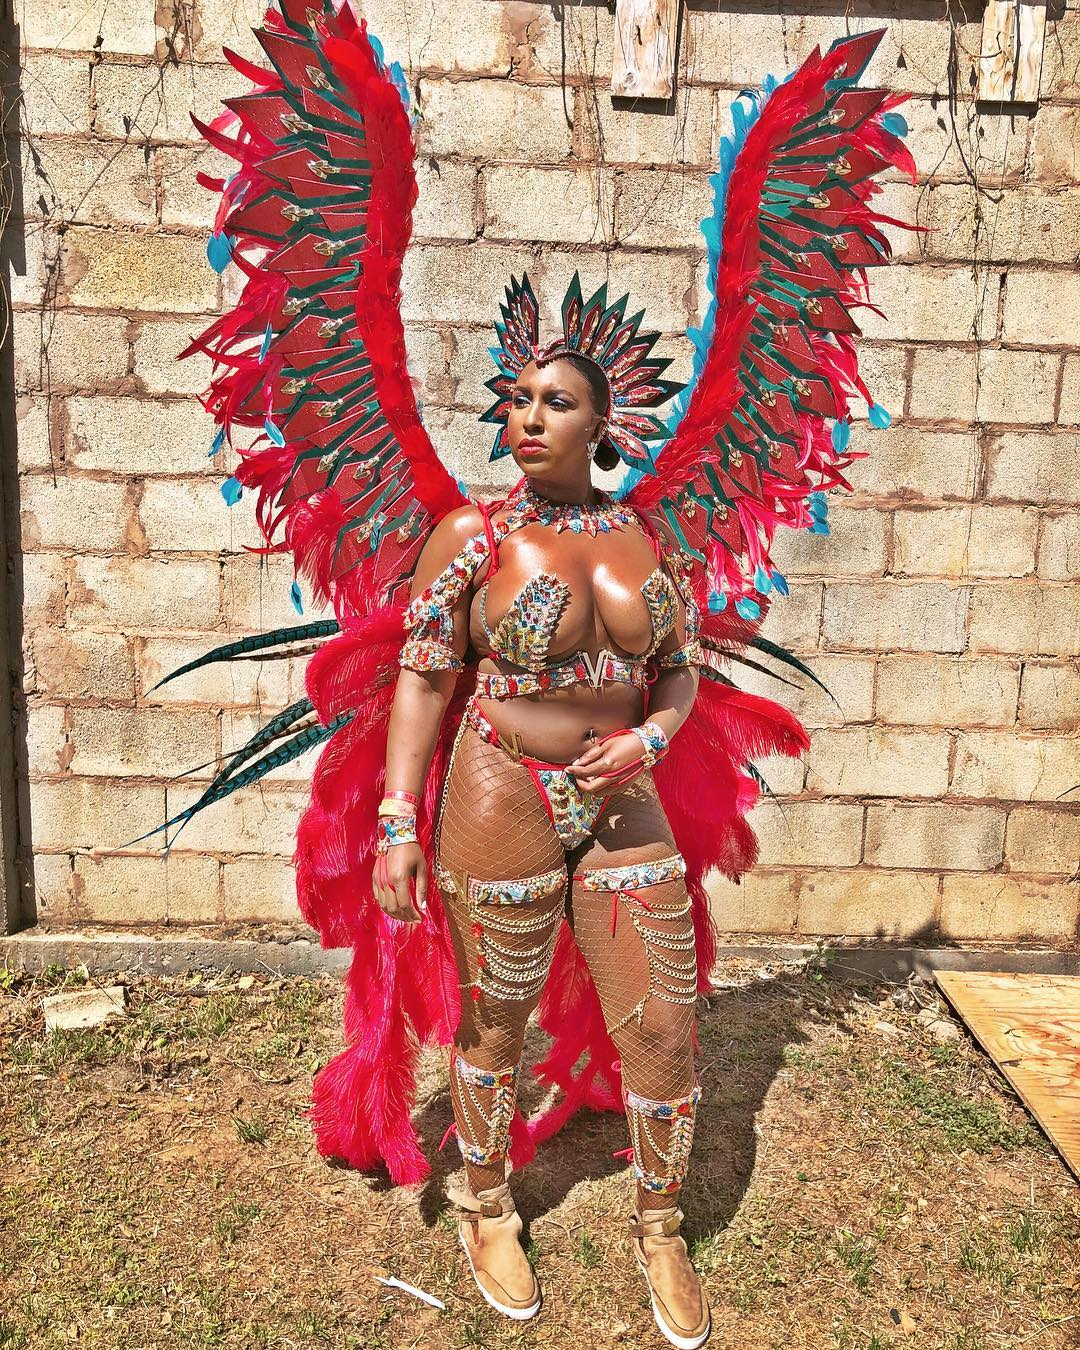 It S All About Blazing Hot Costumes At The Trinidad